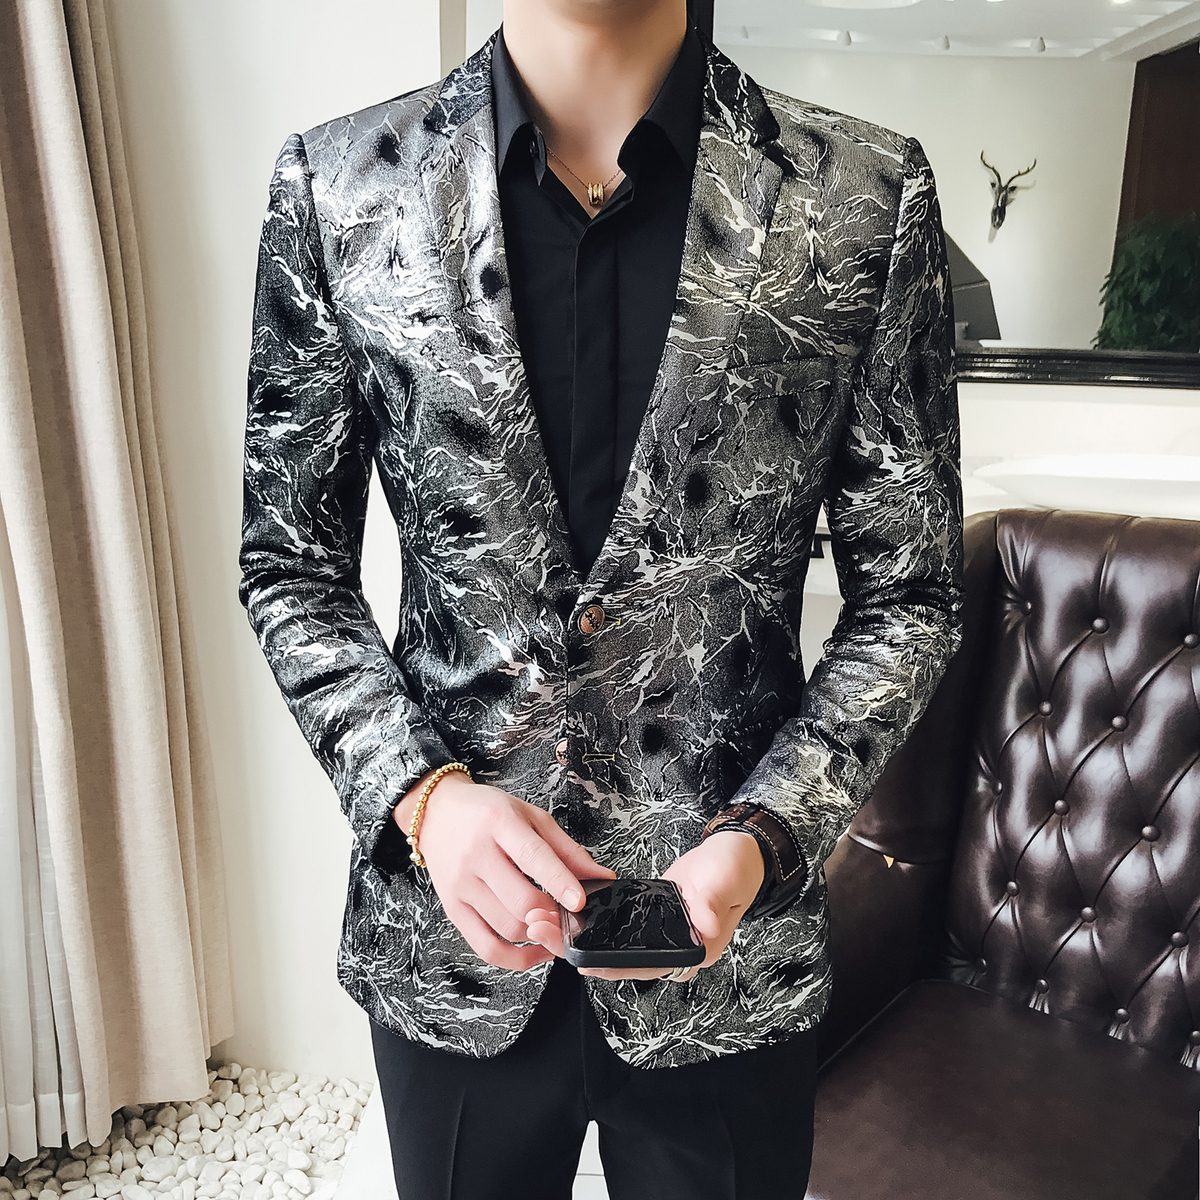 Flashlight Print Velvet Blazer Men 2020 High Quality Stylish Blazer For Mens Designer Blazer Suits Jacket Stage Costumes 5xl